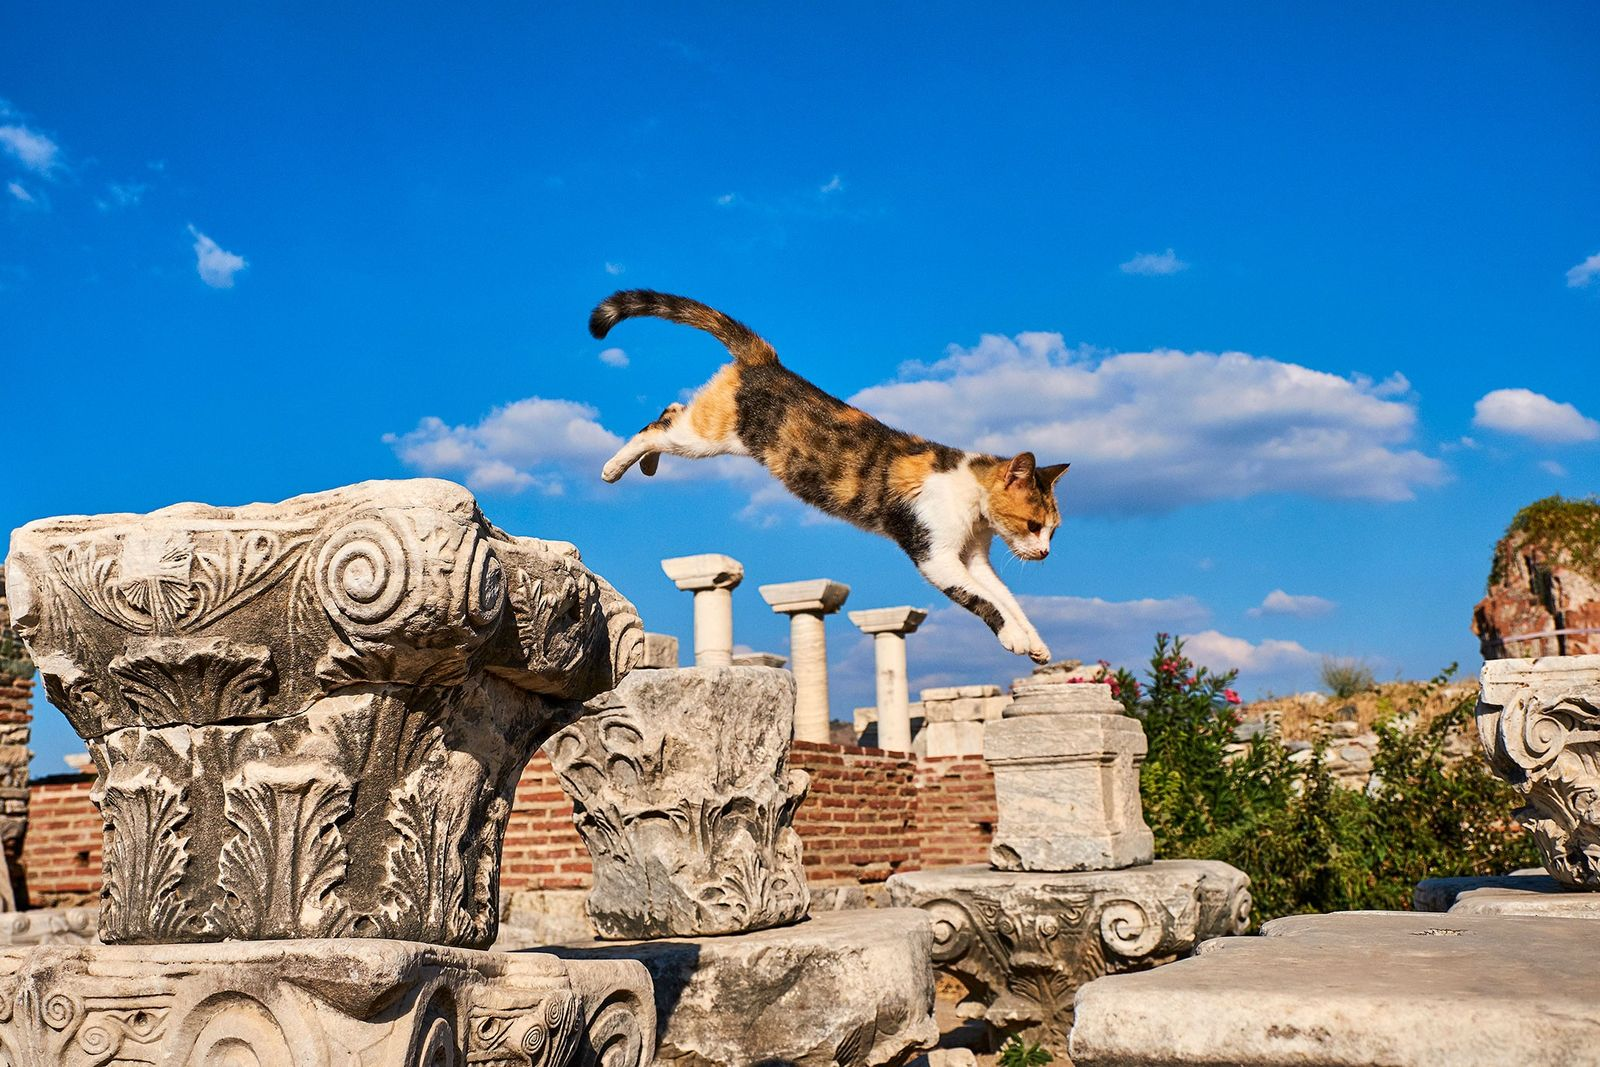 Ephesus, an ancient Roman port city, is home to countless felines. The photographer caught this calico ...